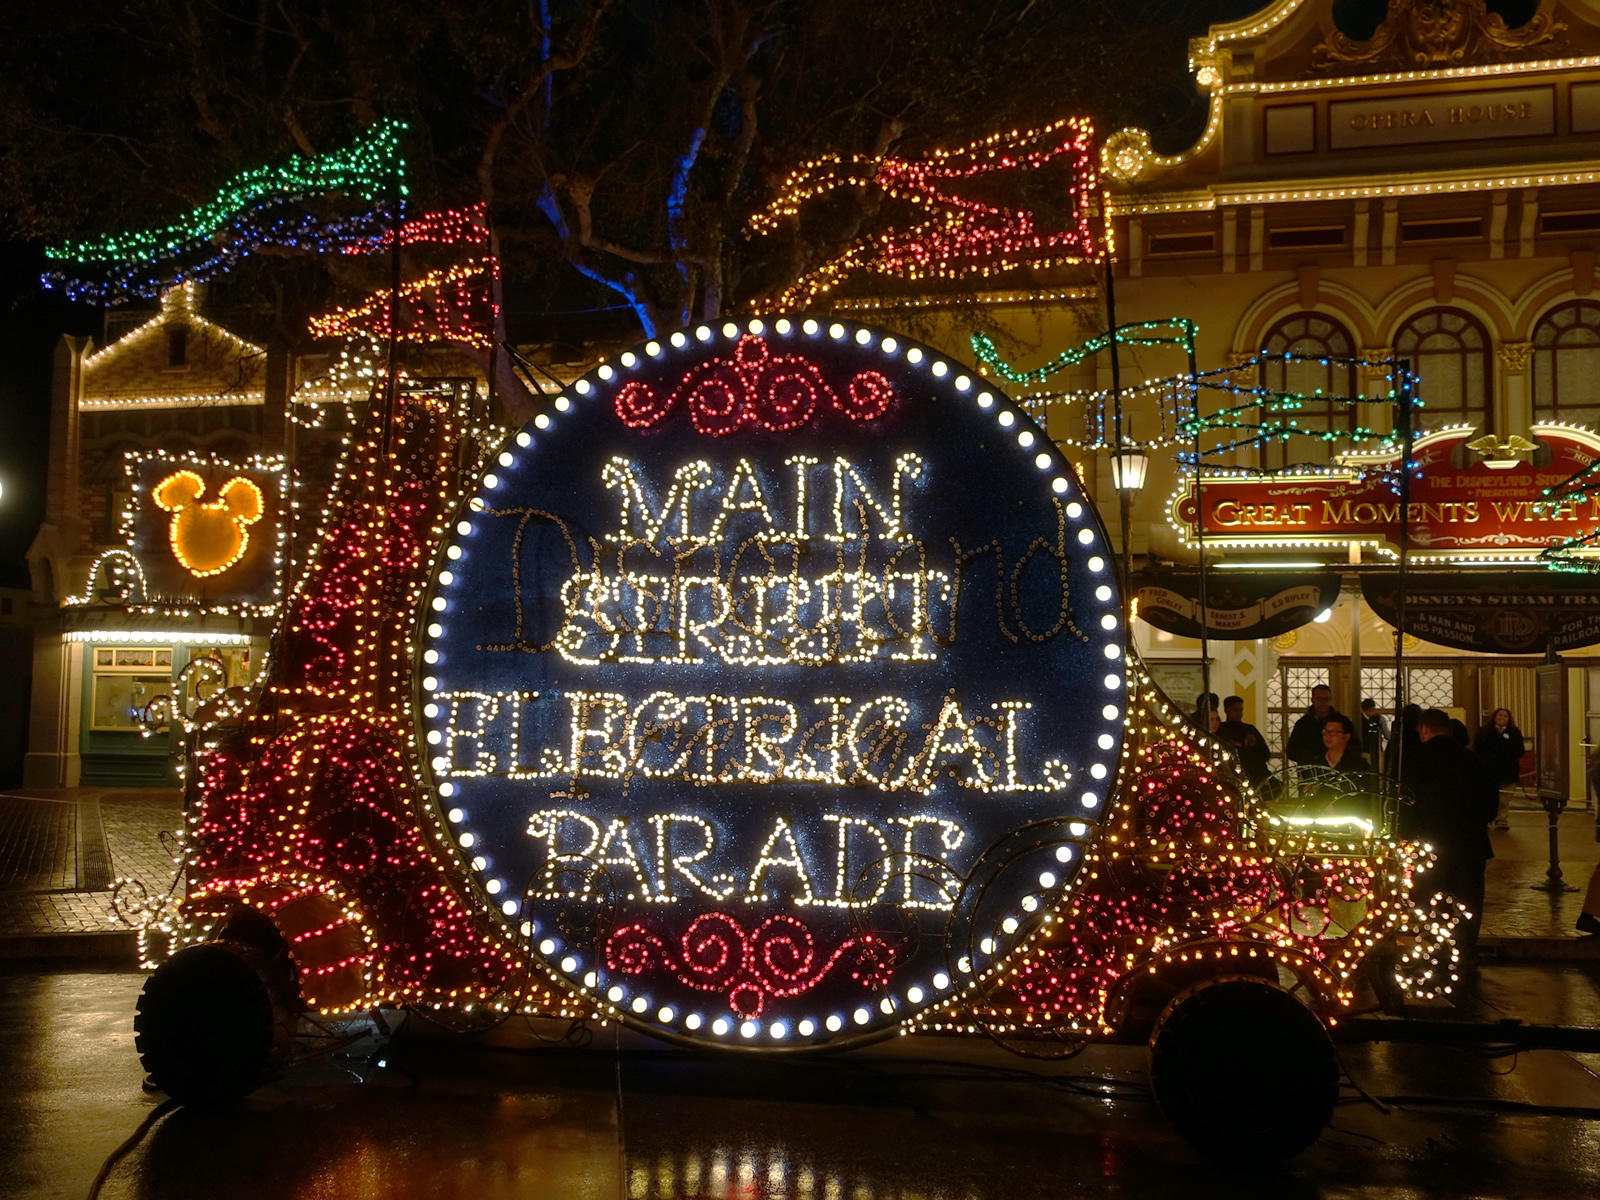 disneylands new parade policy will help reduce your wait for the main street electrical parade mouseplanet file photo